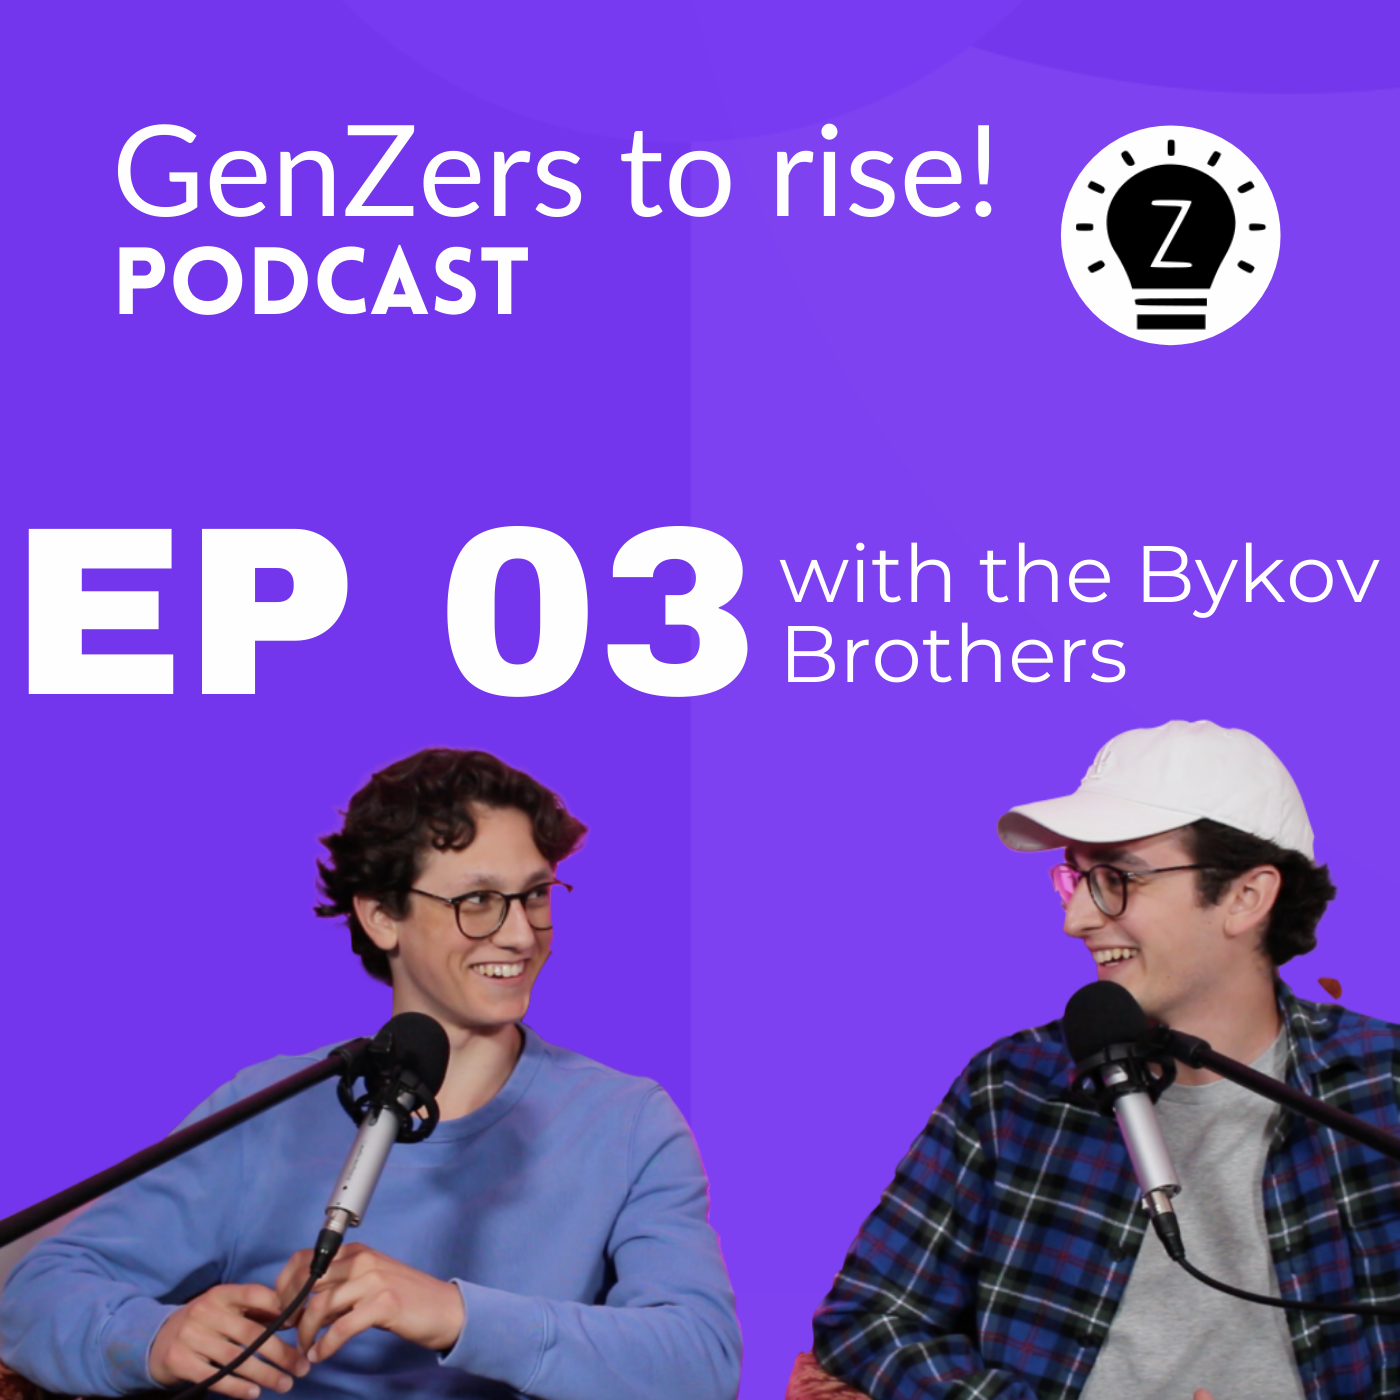 Ep 3 of GenZers to rise! Podcast: Ever been interested in starting a podcast? with the Bykov brothers